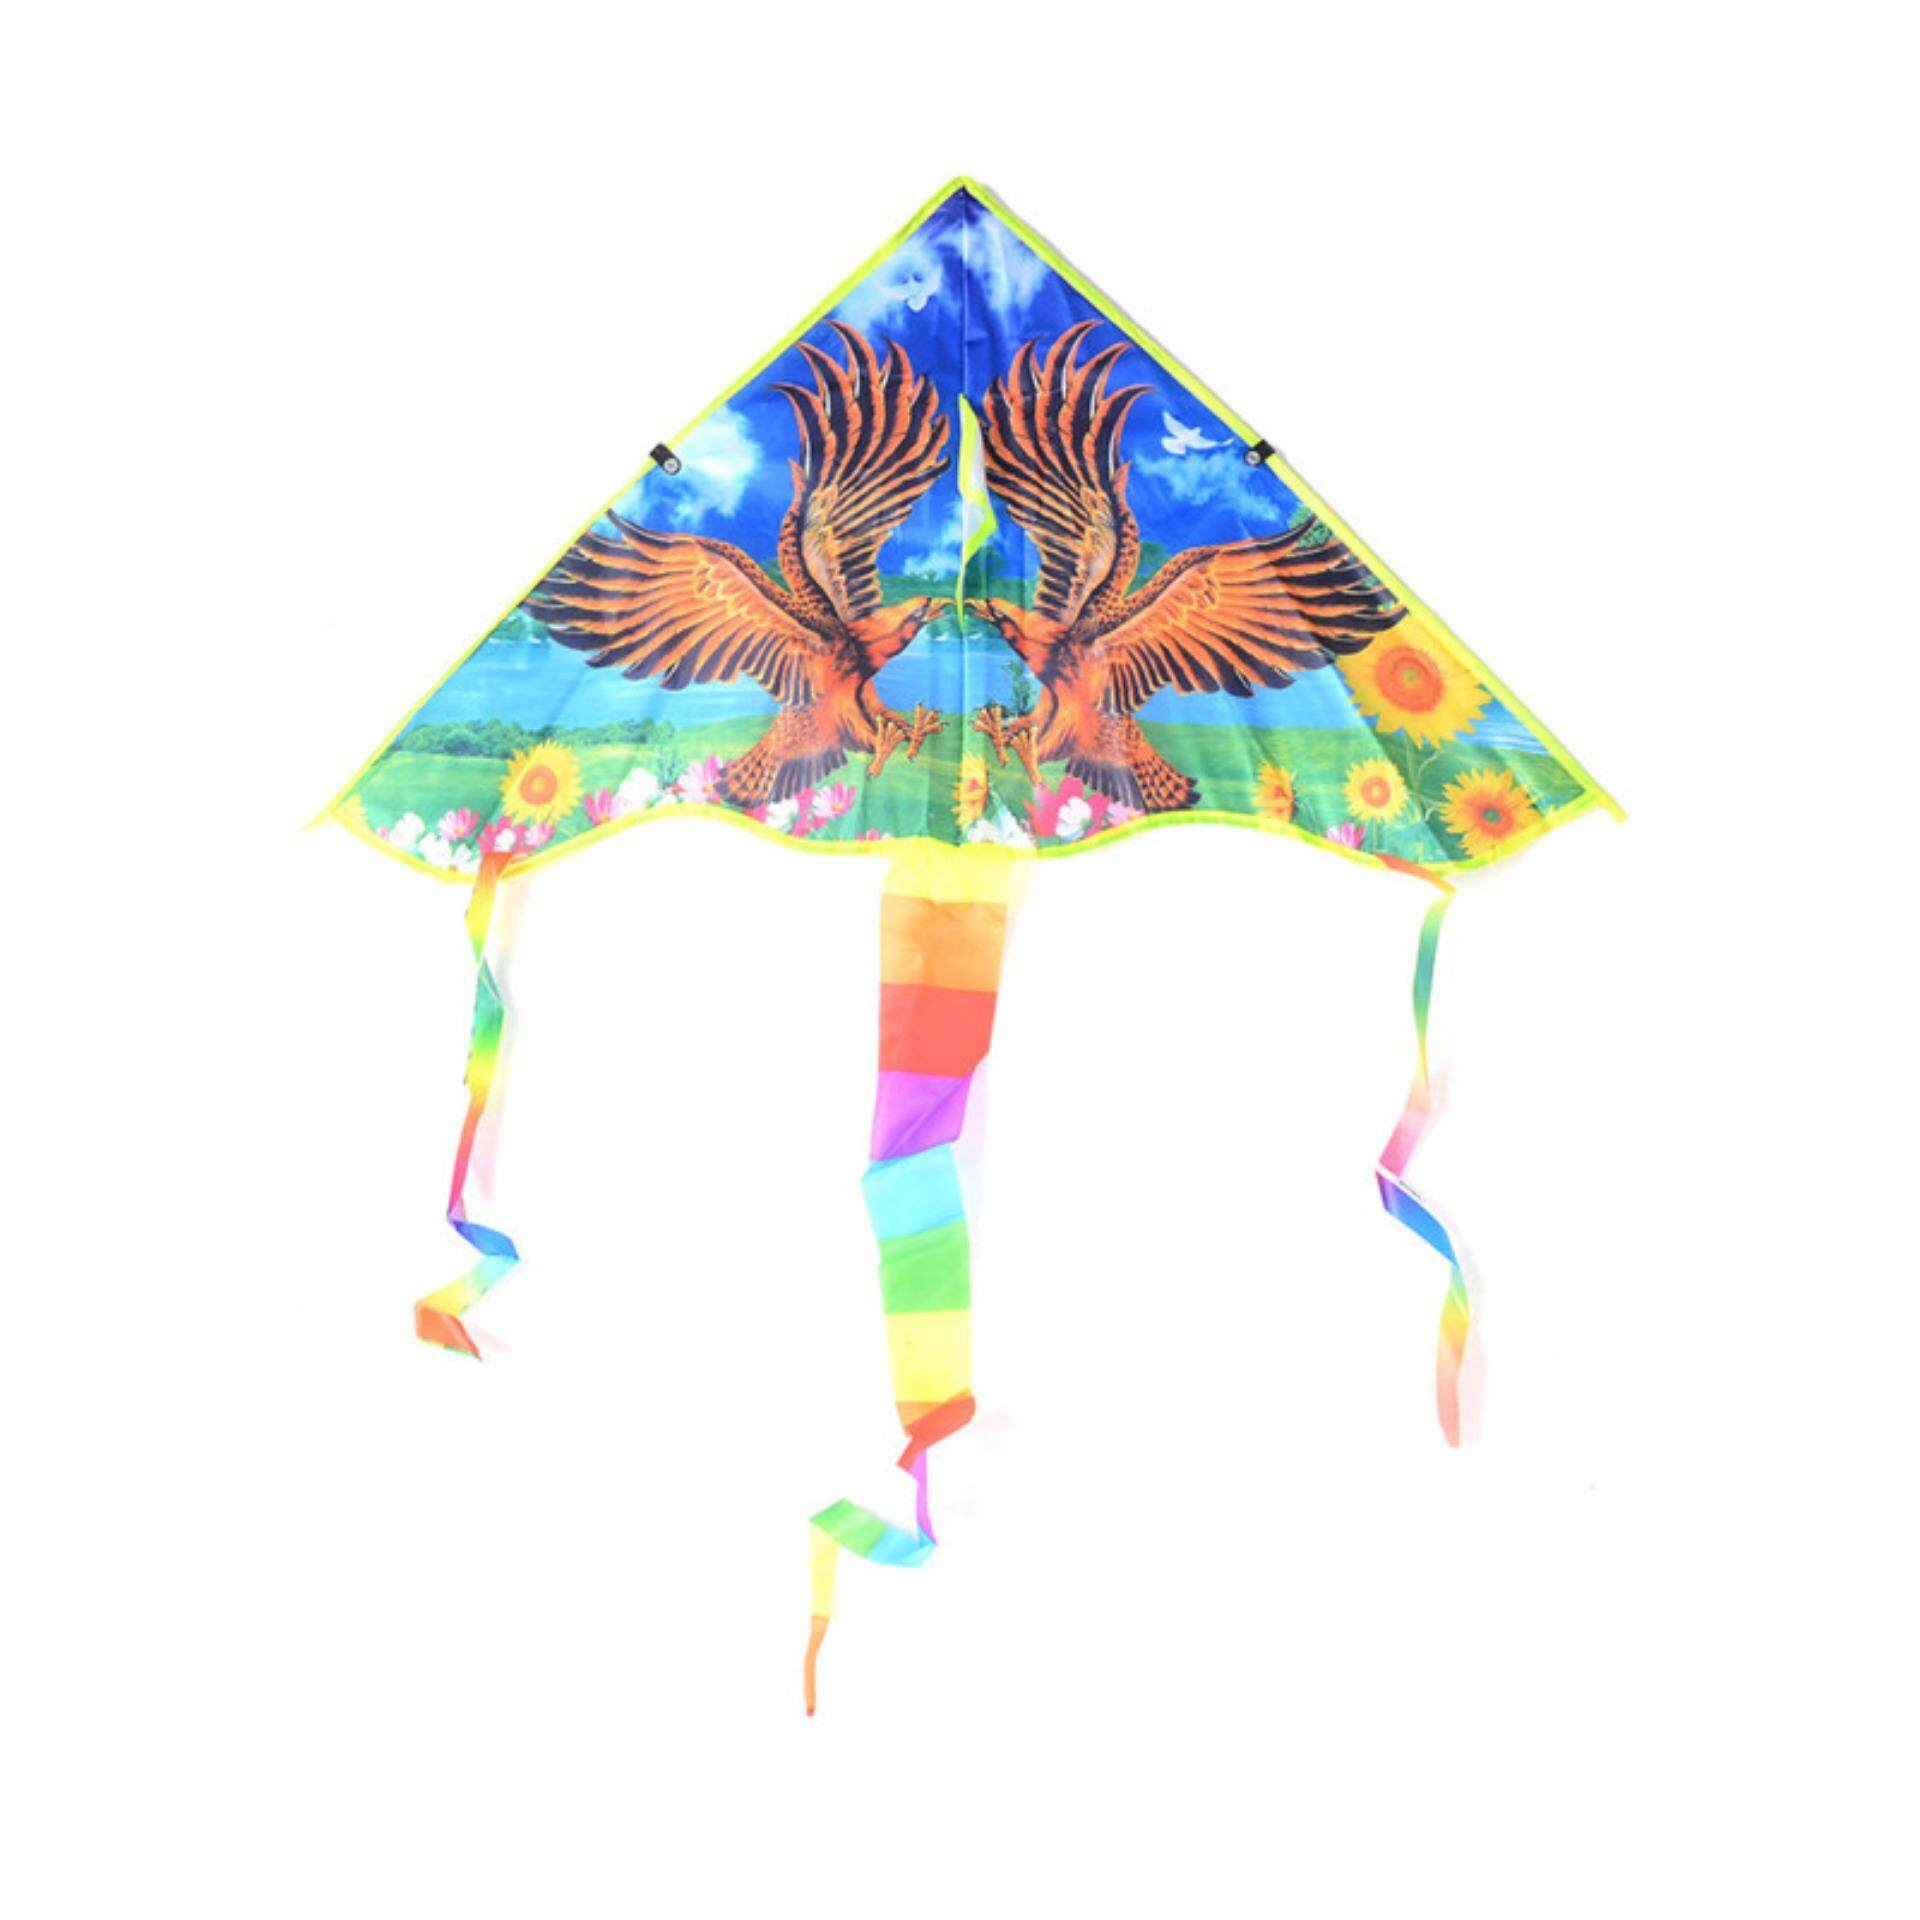 80cm Eagle Printed Long Tail Kite Children Kids Outdoor Garden Fun Toys By A-Liname.